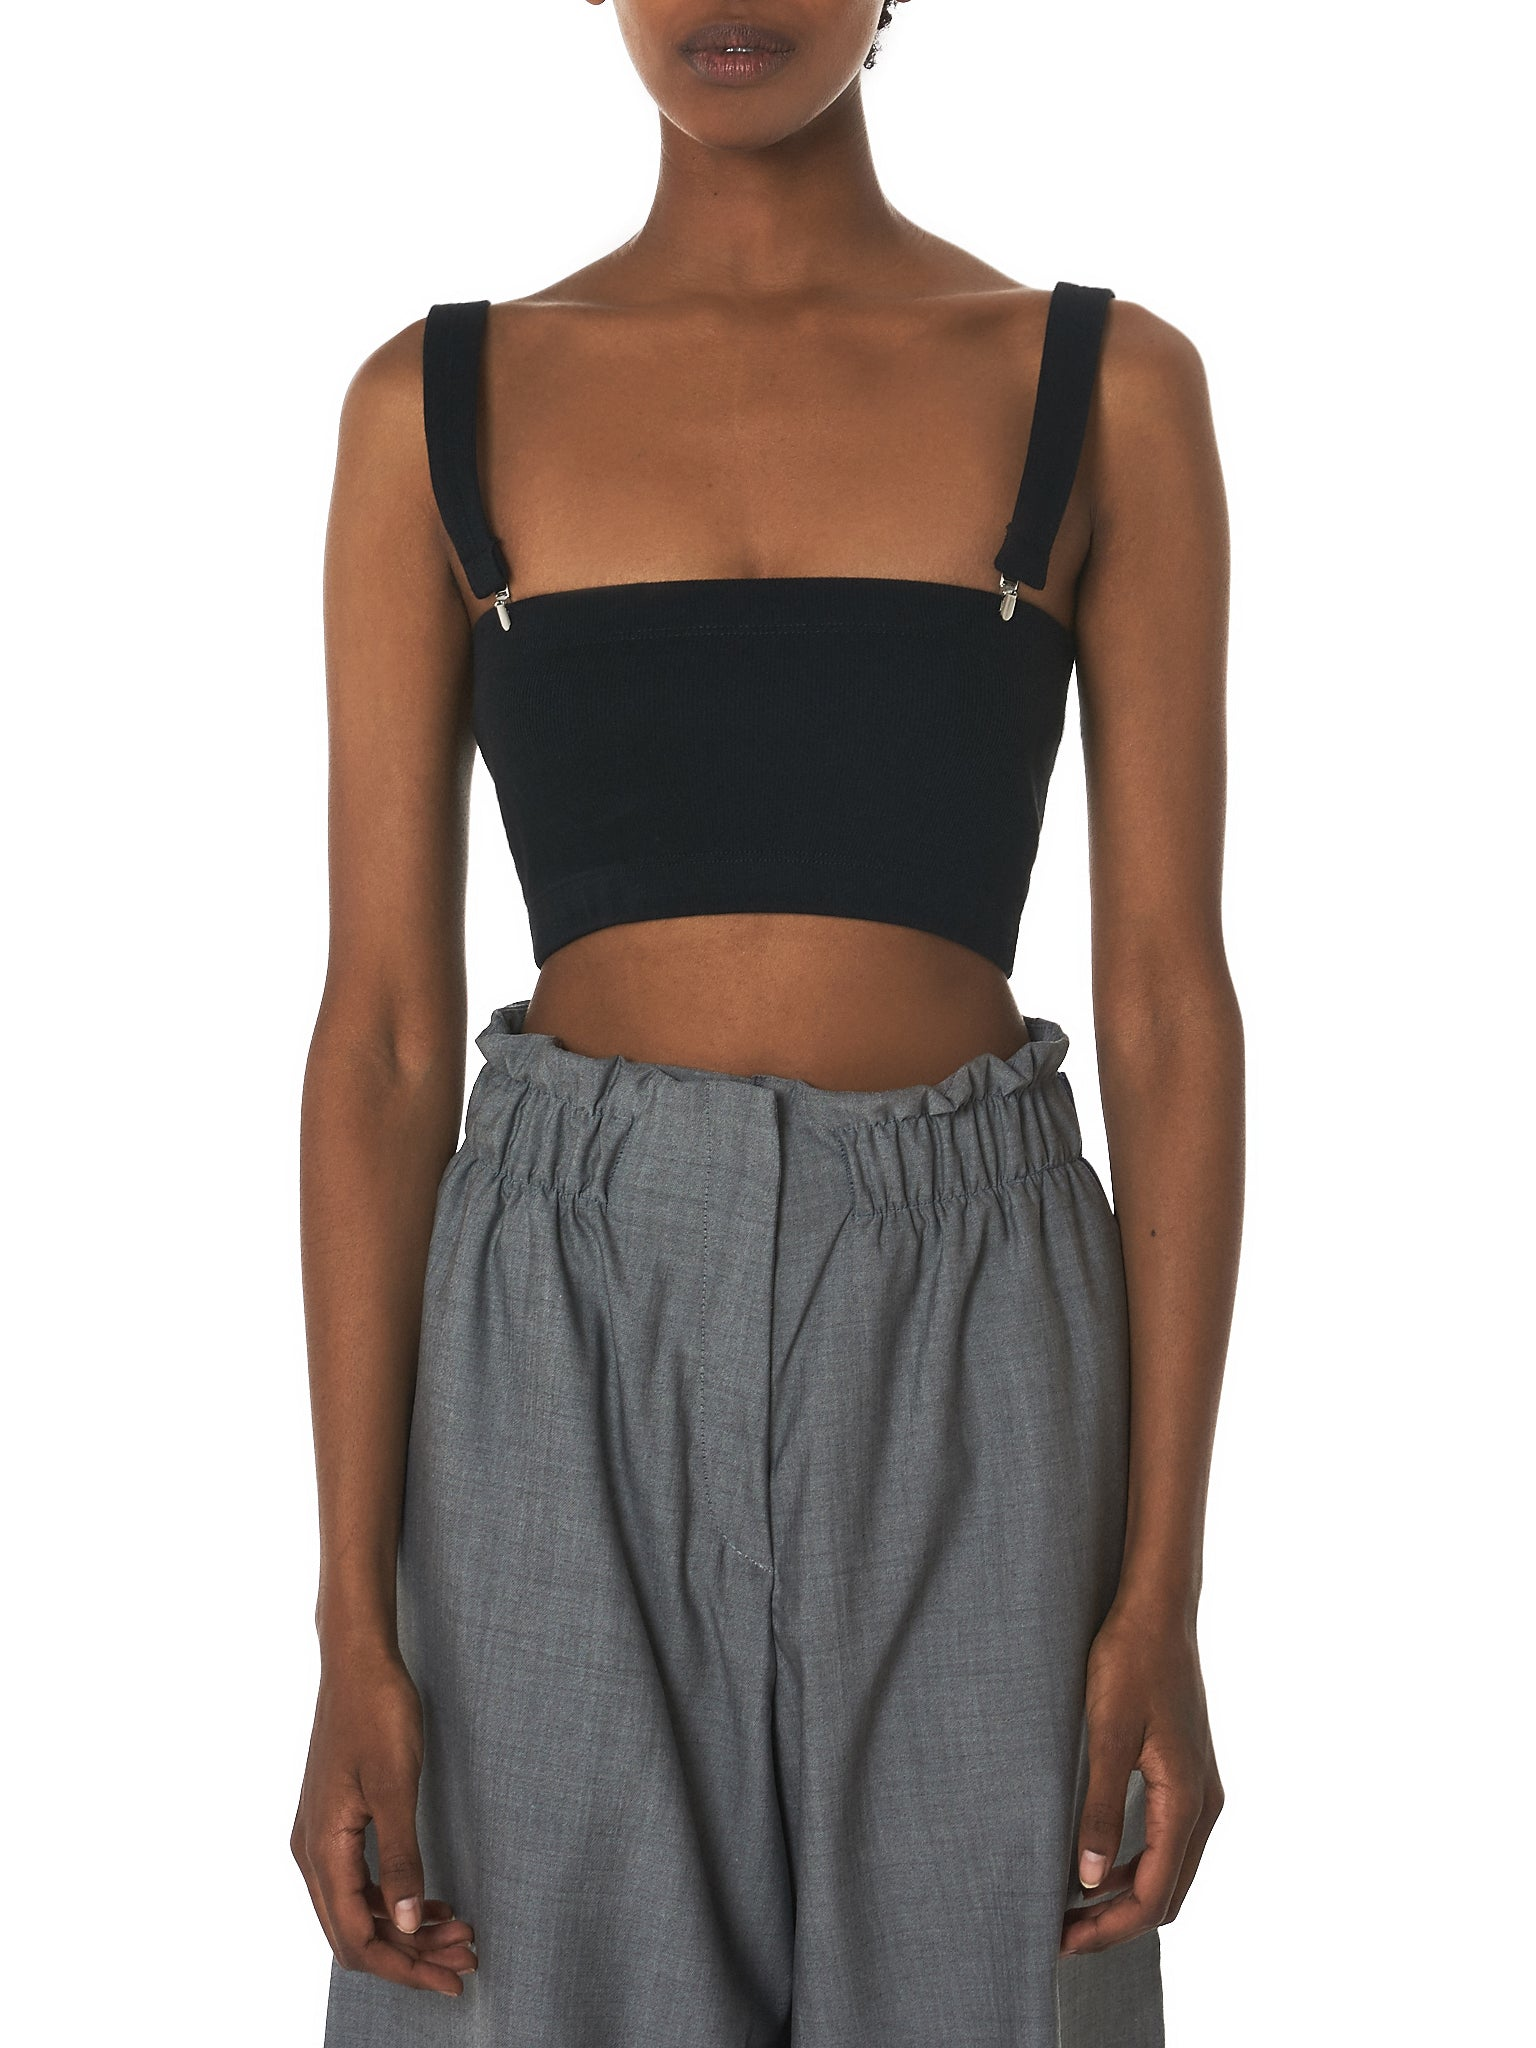 Marie Yat Cropped Top - Hlorenzo Front